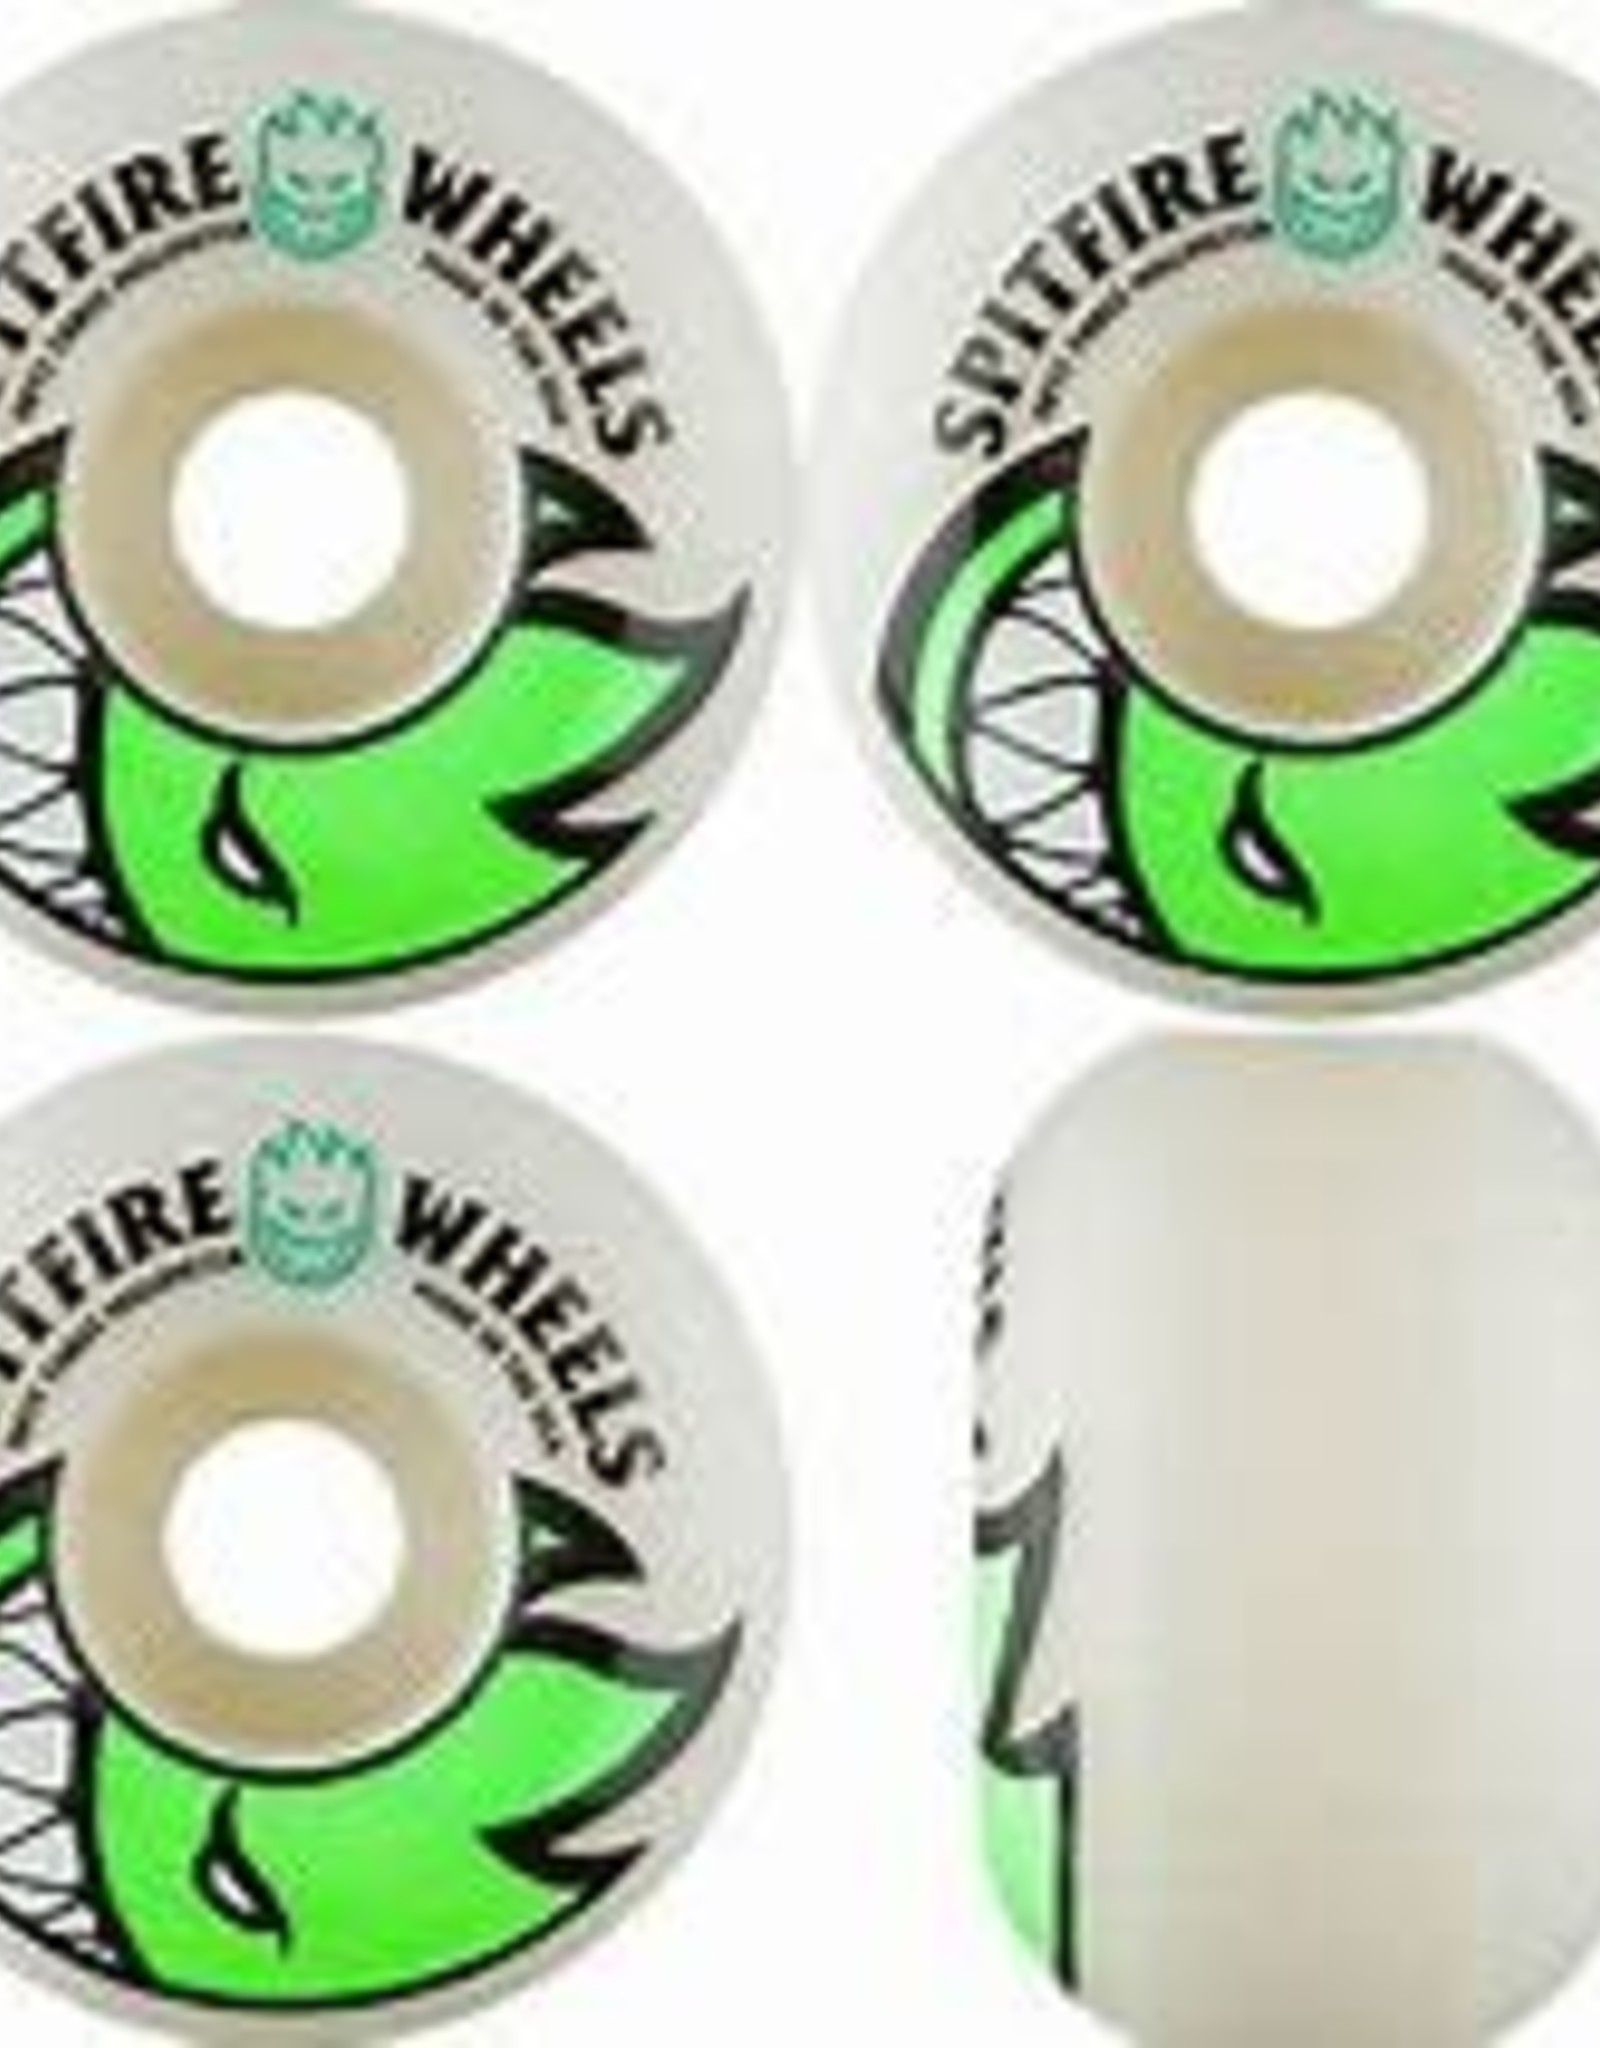 Spitfire Spitfire - BIGHEAD WHEELS - 53mm